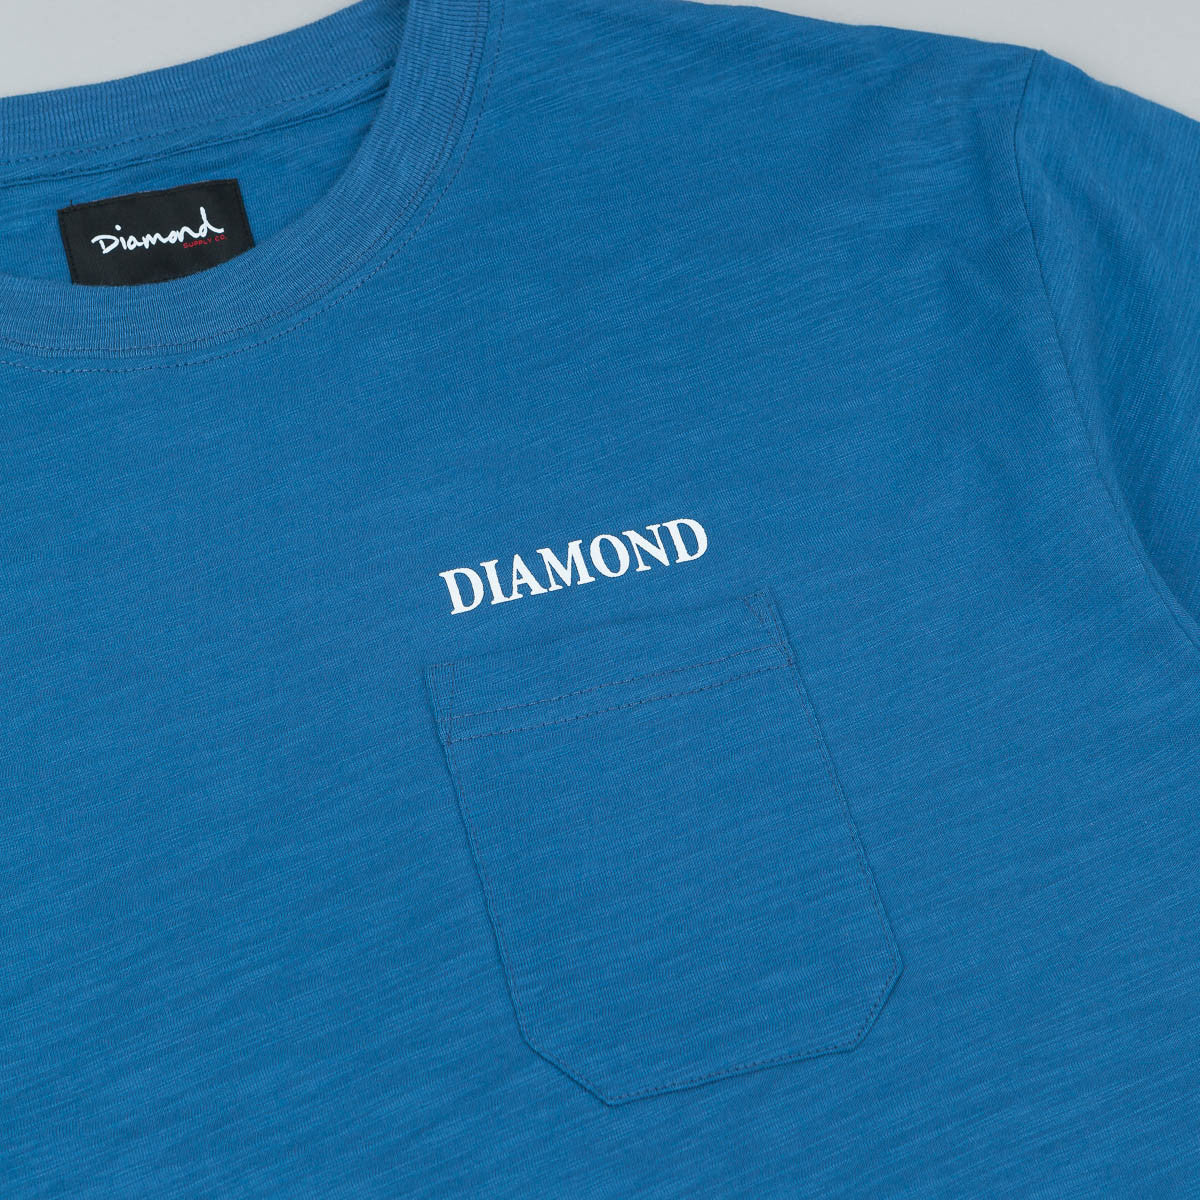 Diamond Pocket T-Shirt - Indigo